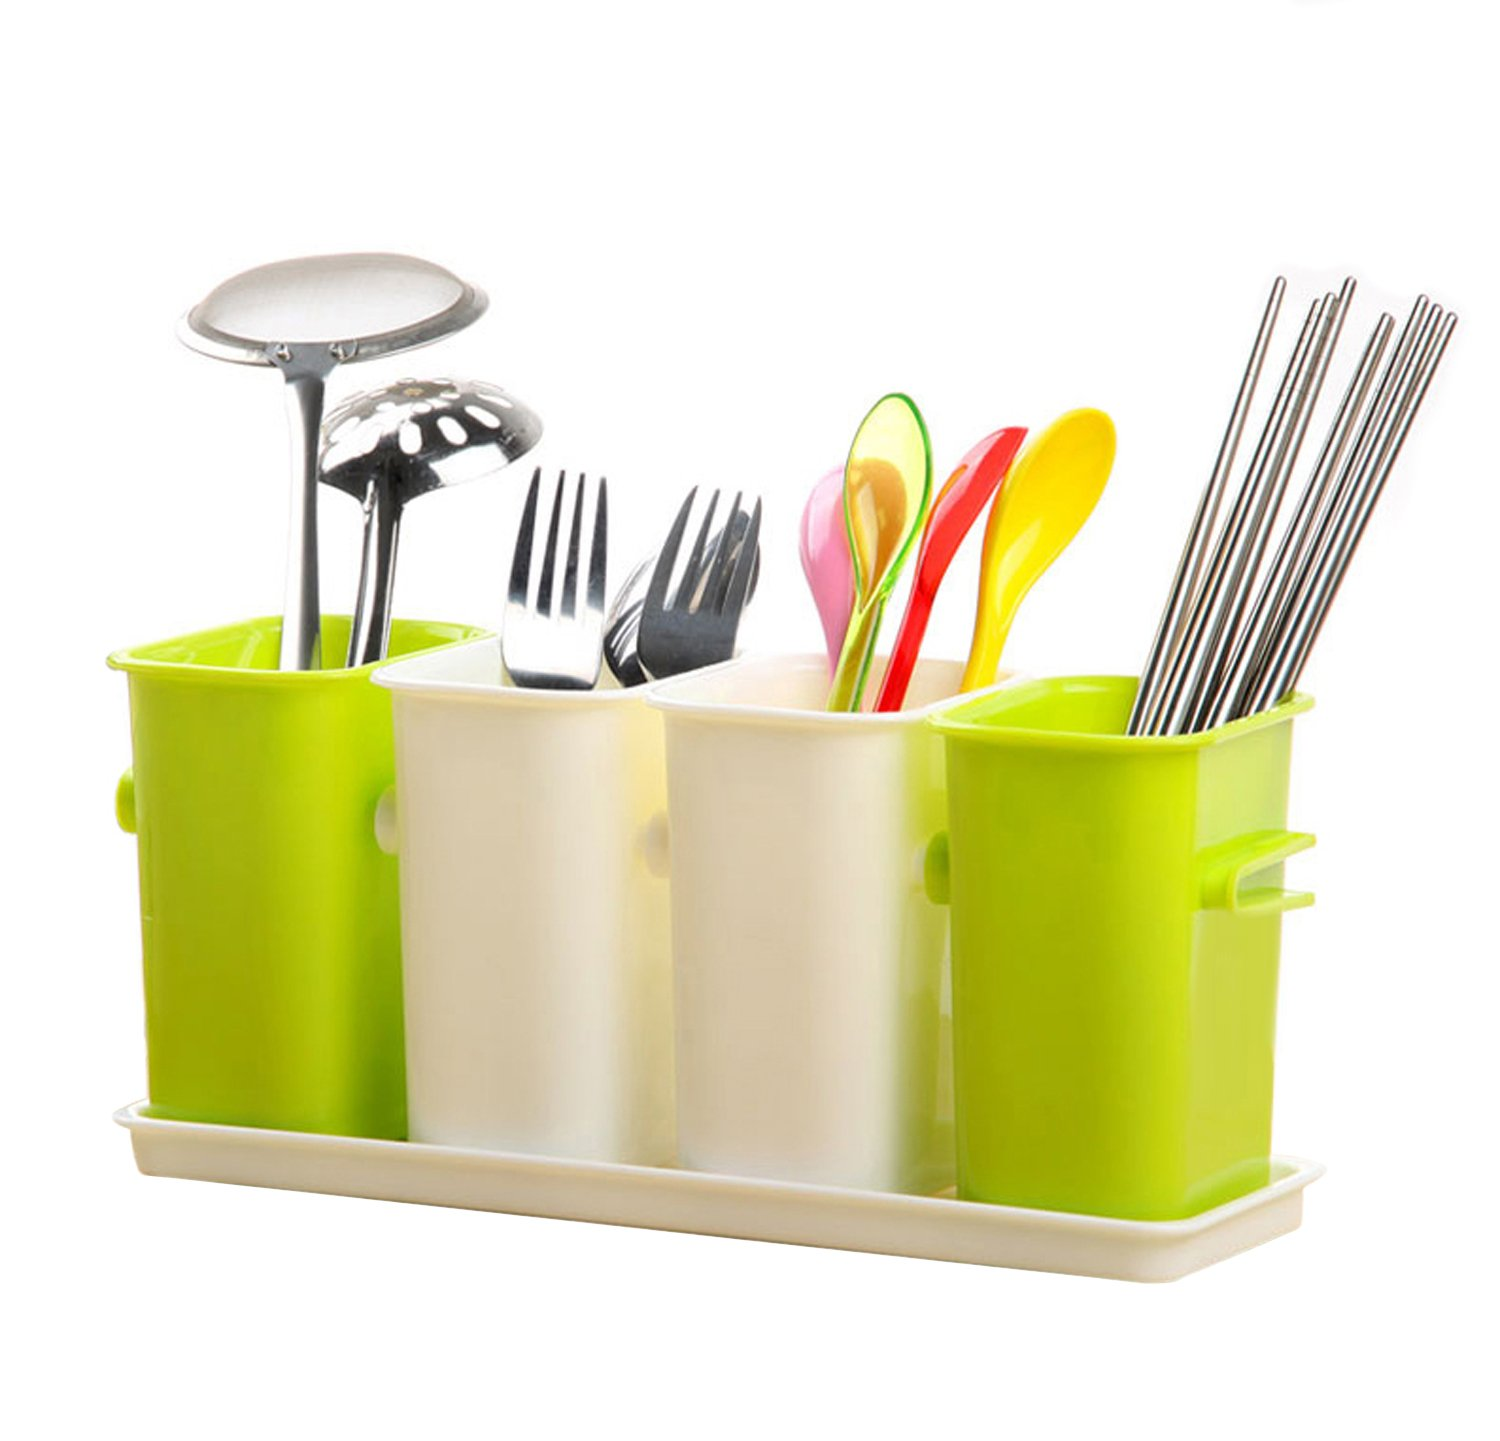 Honla Interlocking Plastic Flatware Caddy Organizer On